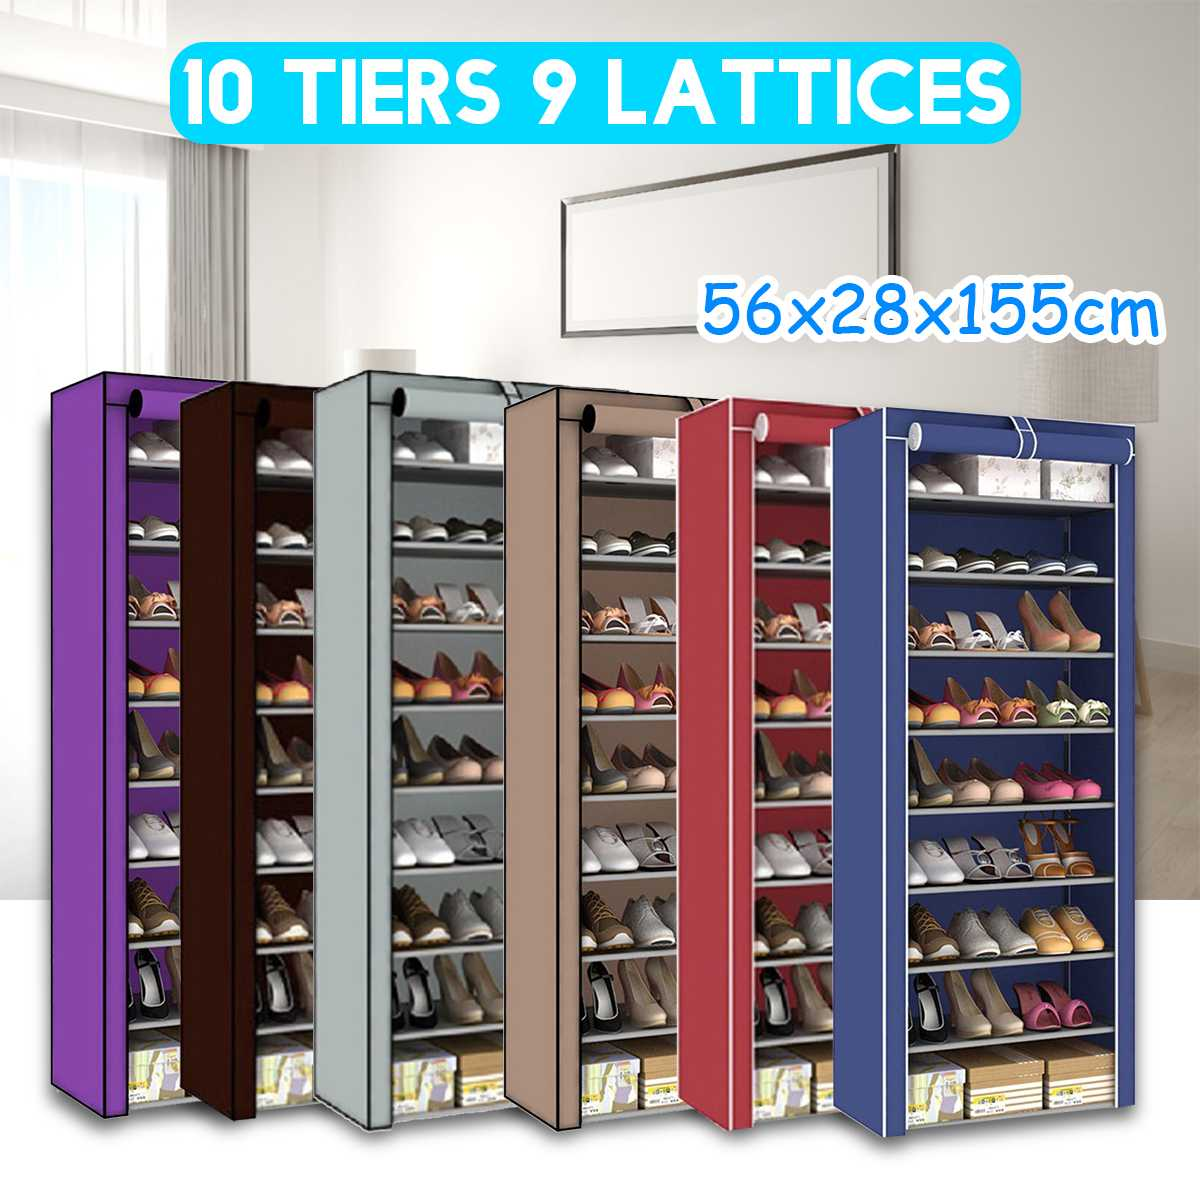 9 Tier Shoe Rack Dust-proof Shoe Cabinet Folding Non-woven Cloth Shoe Storage Stand Holder DIY Assembly Shoe Organizer Rack